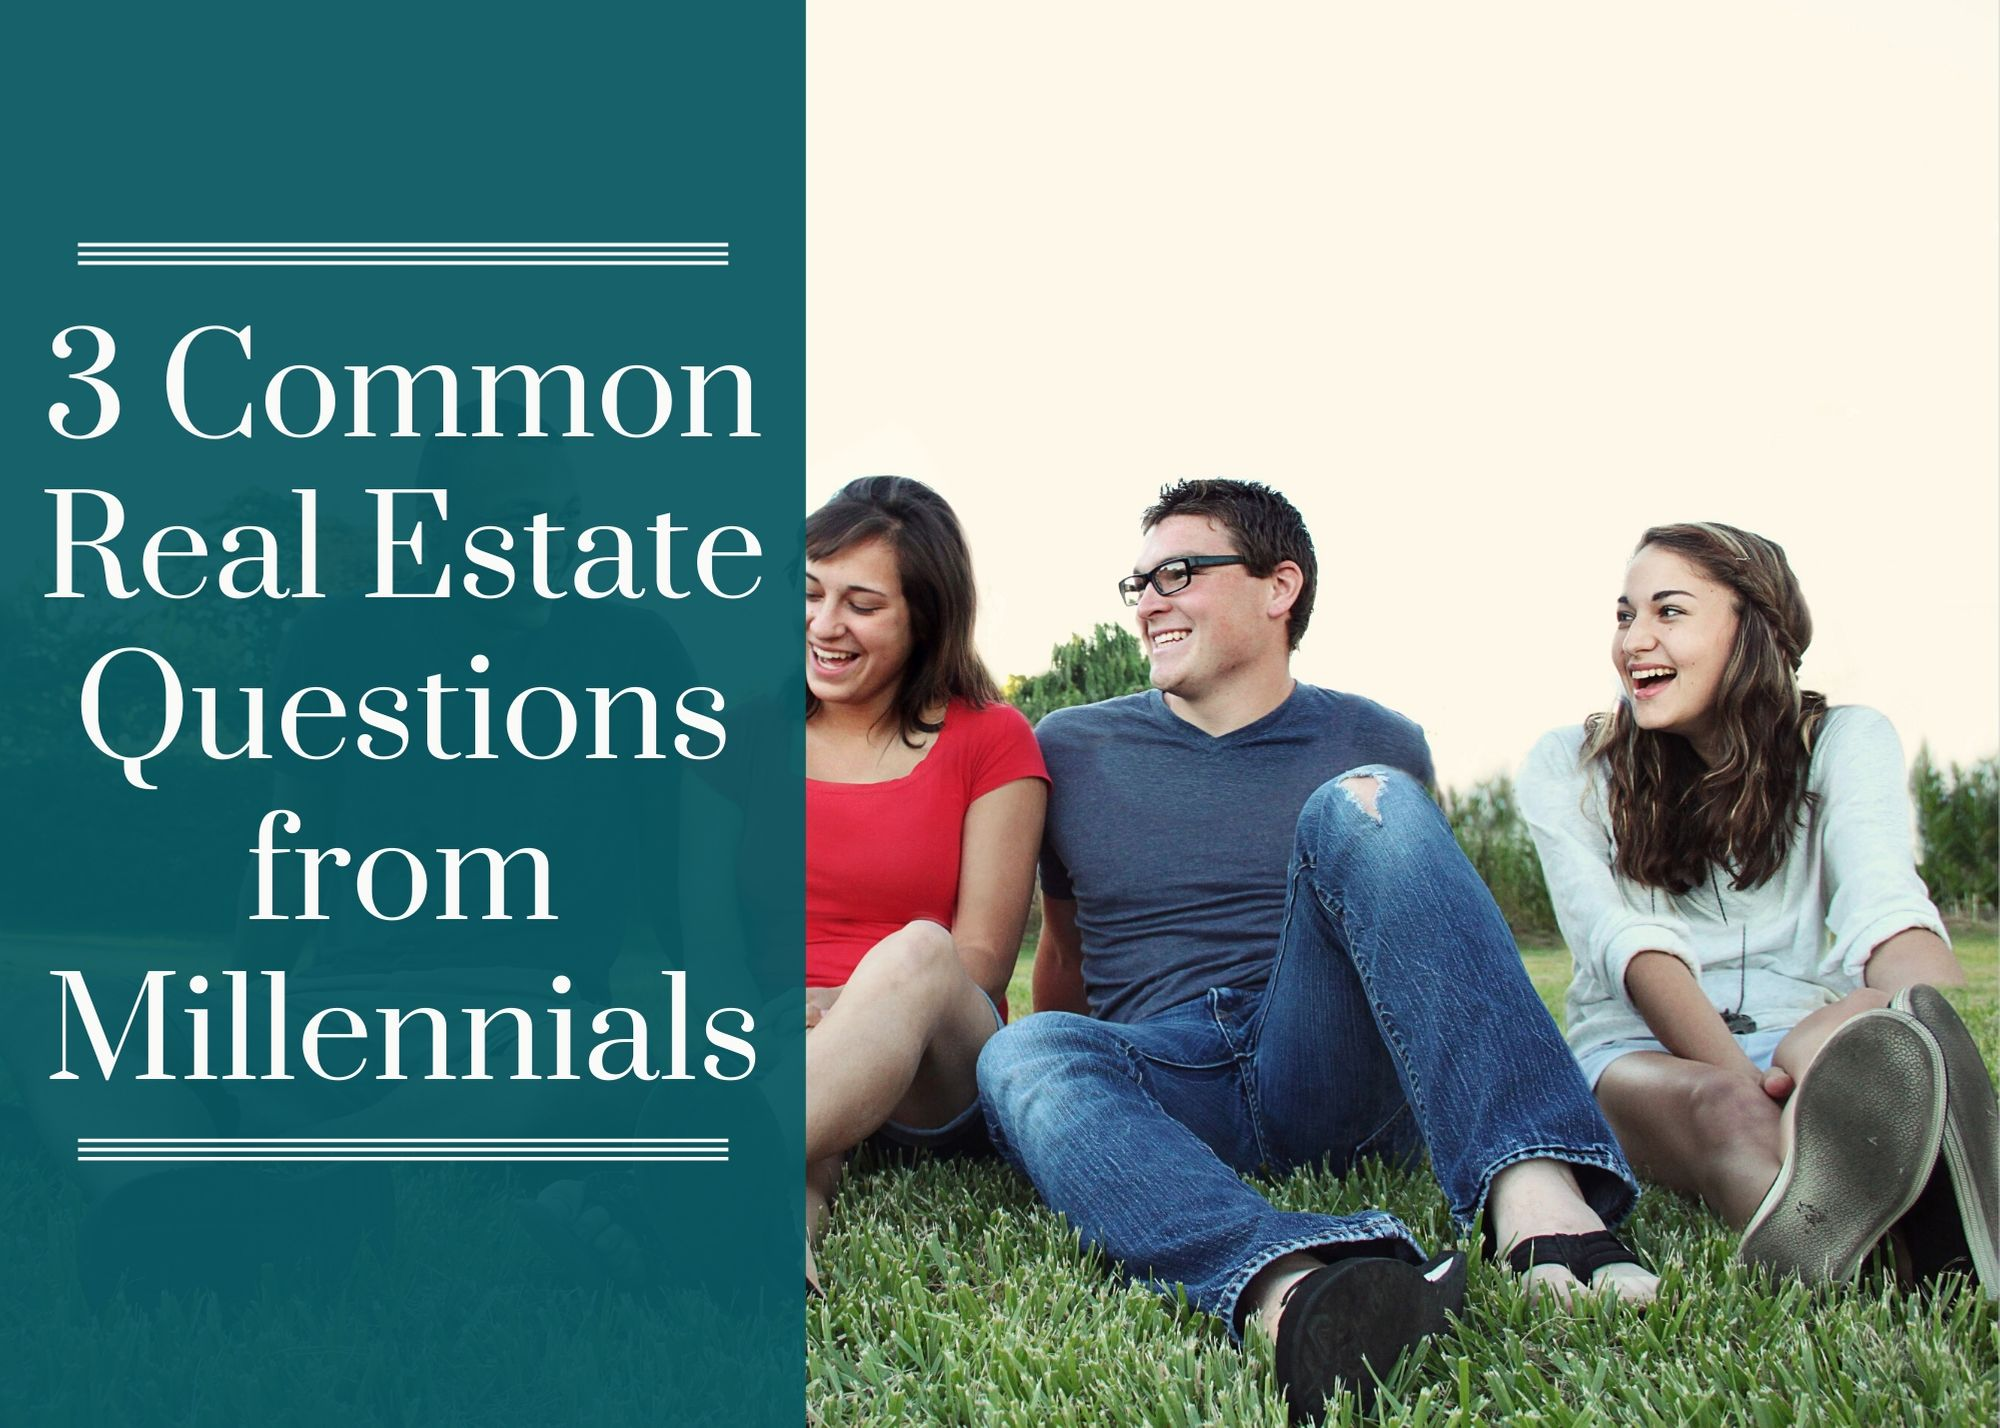 3 Common Real Estate Questions from Millennials